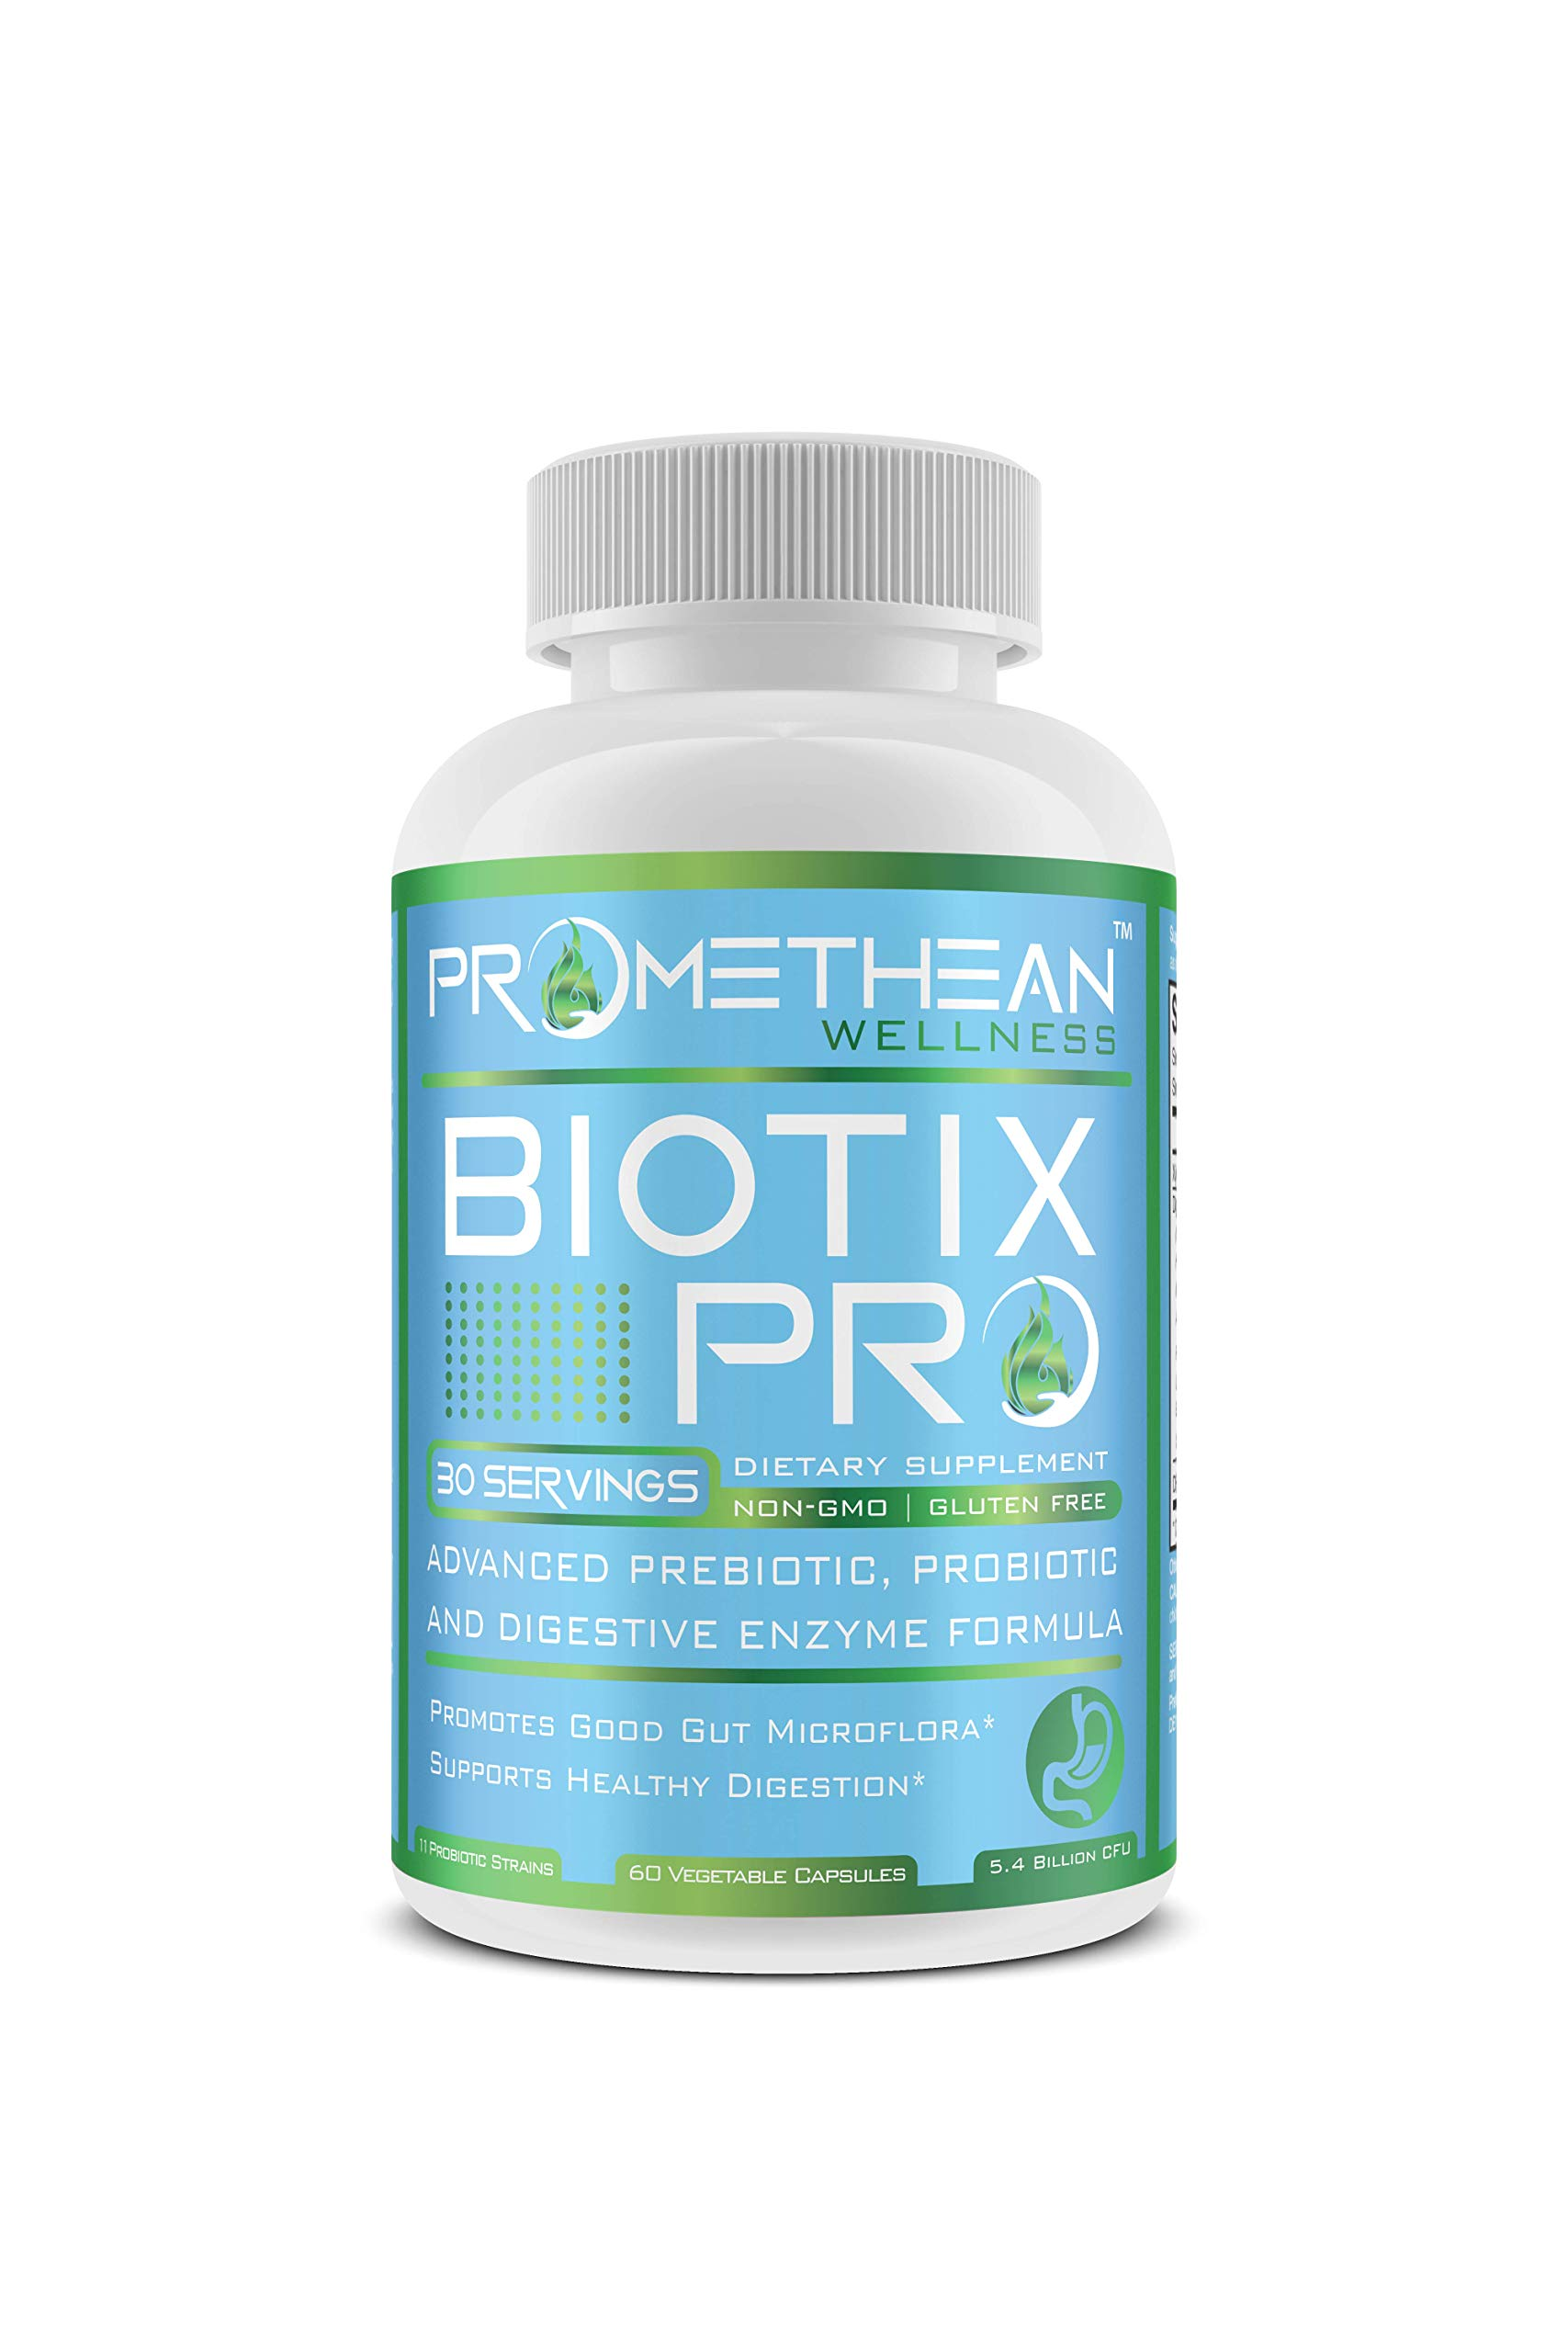 Biotix PRO Advanced Prebiotics and Probiotics Plus Digestive Enzymes for Men and Women Rebalance Your Gut Microbiome Health 60 Count Powder Capsules by Promethean Wellness